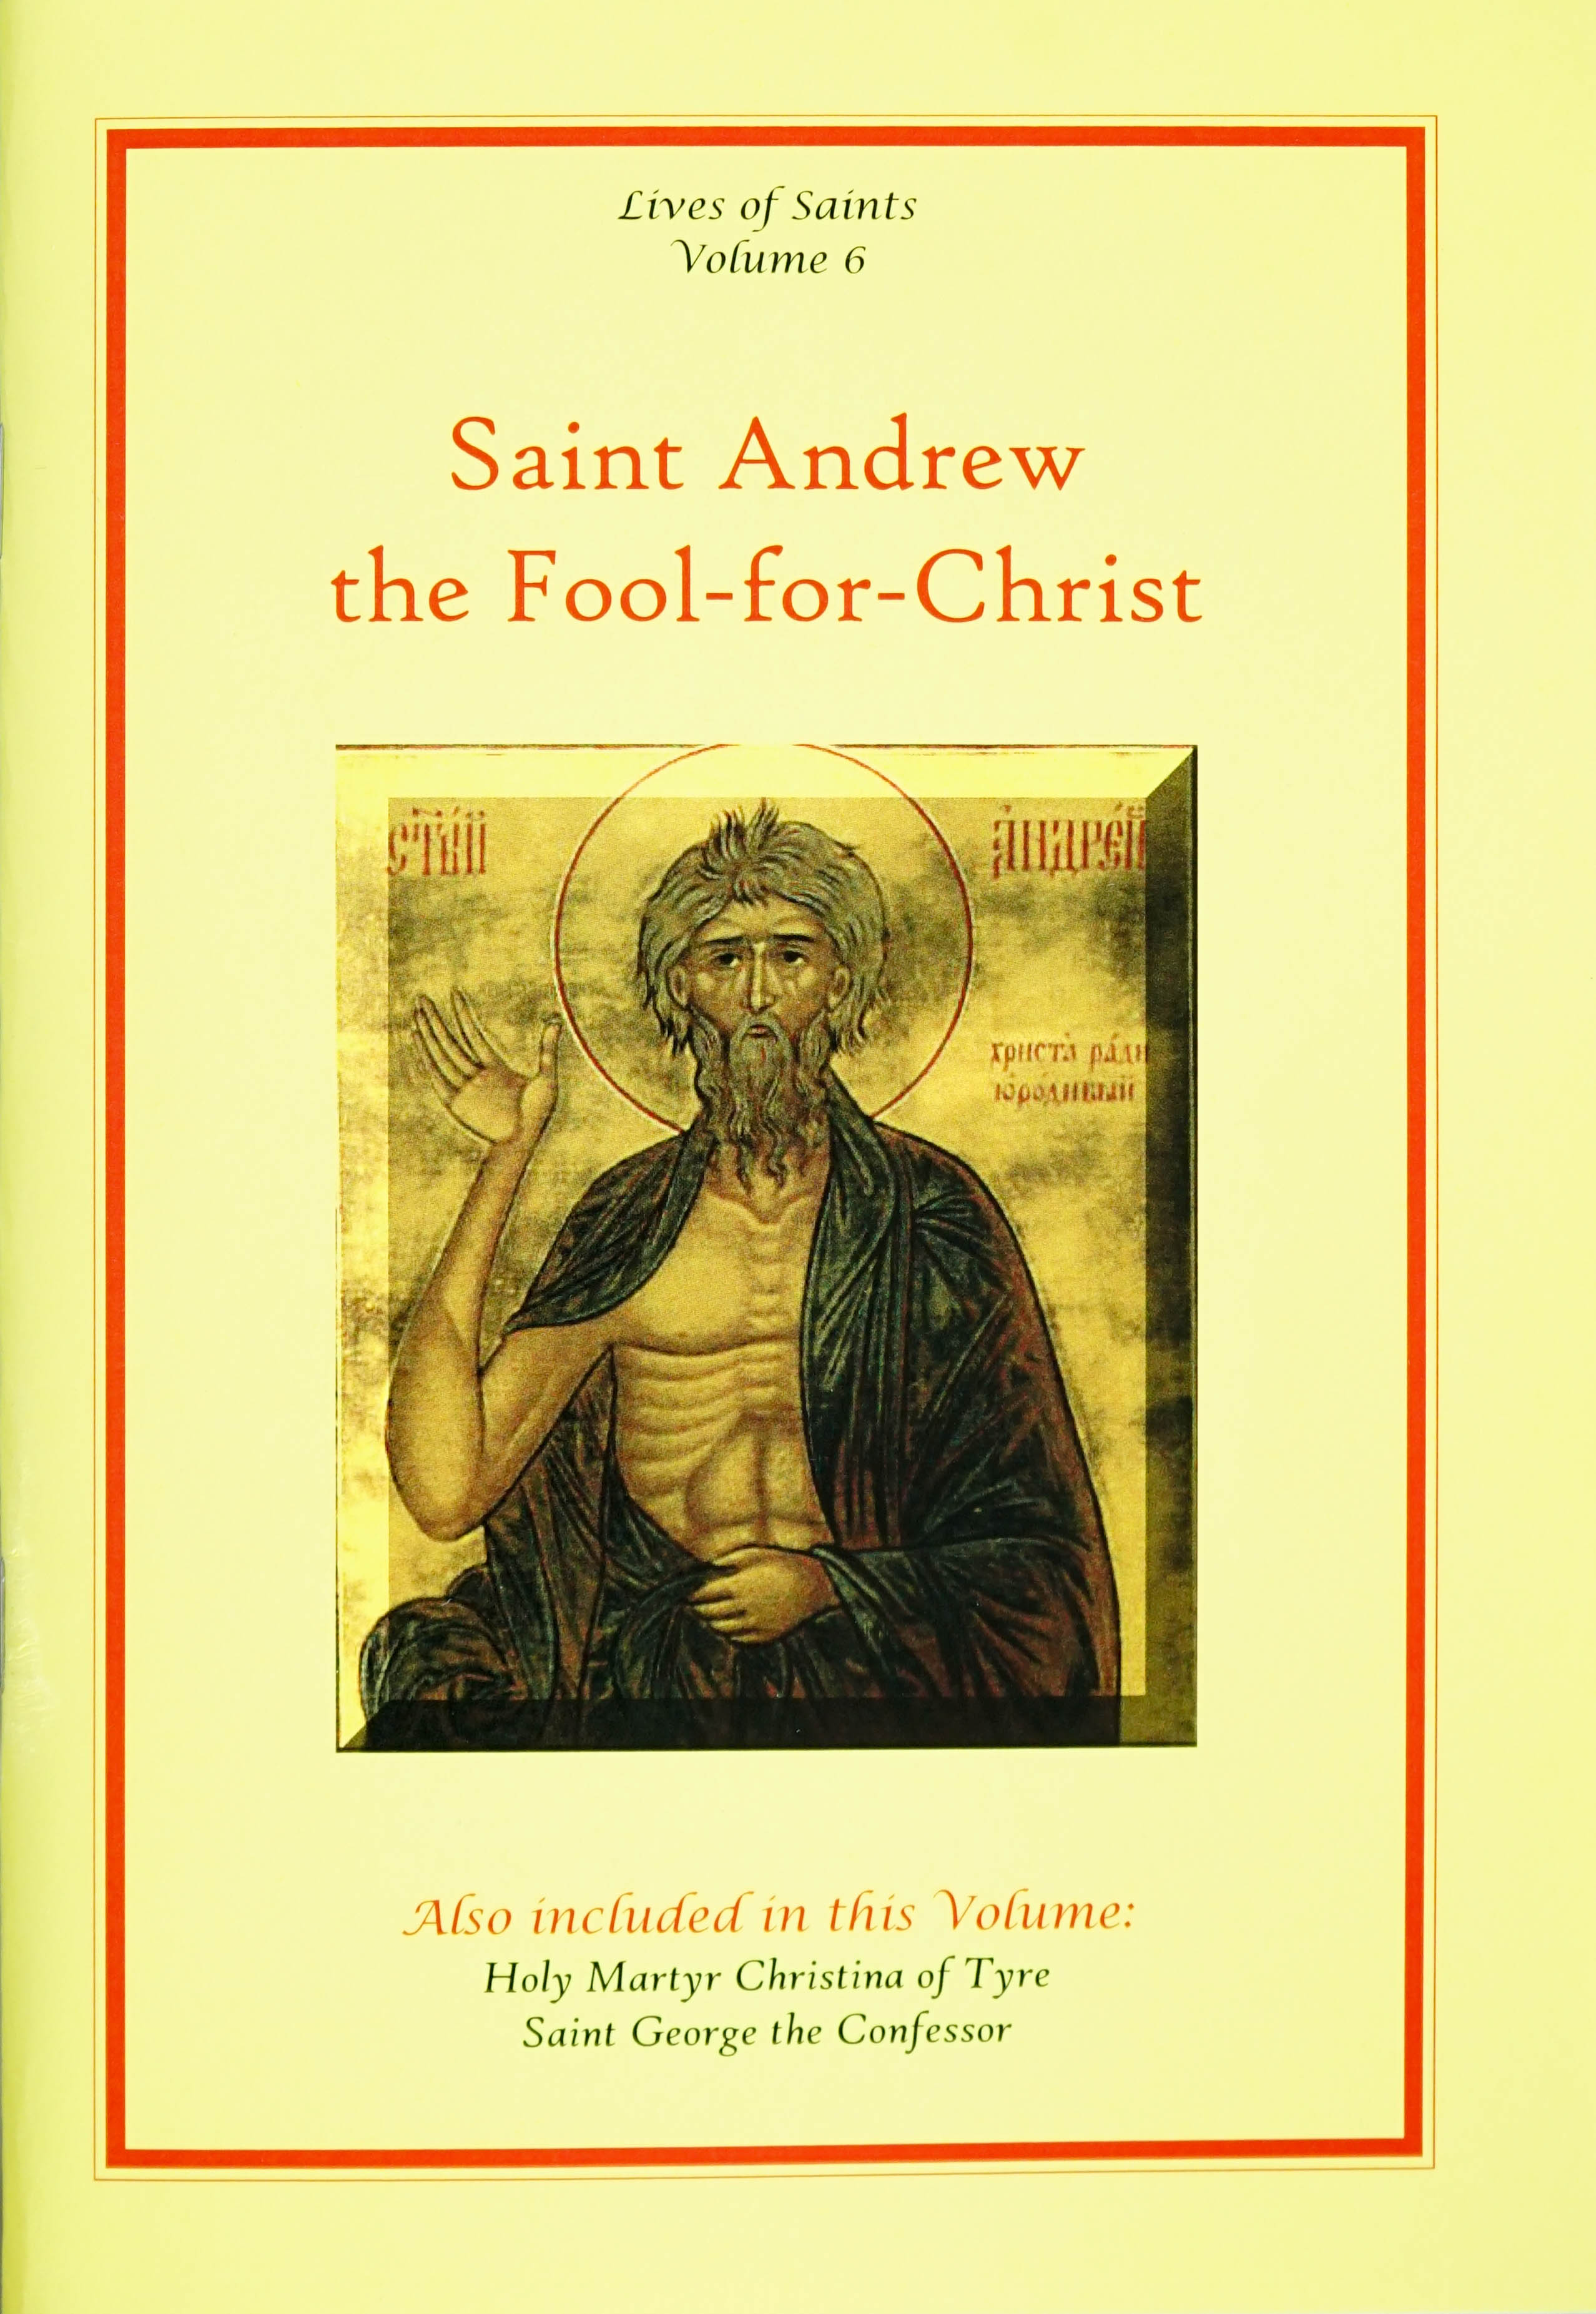 Lives of Saints Vol. 06: Saint Andrew the Fool-for-Christ